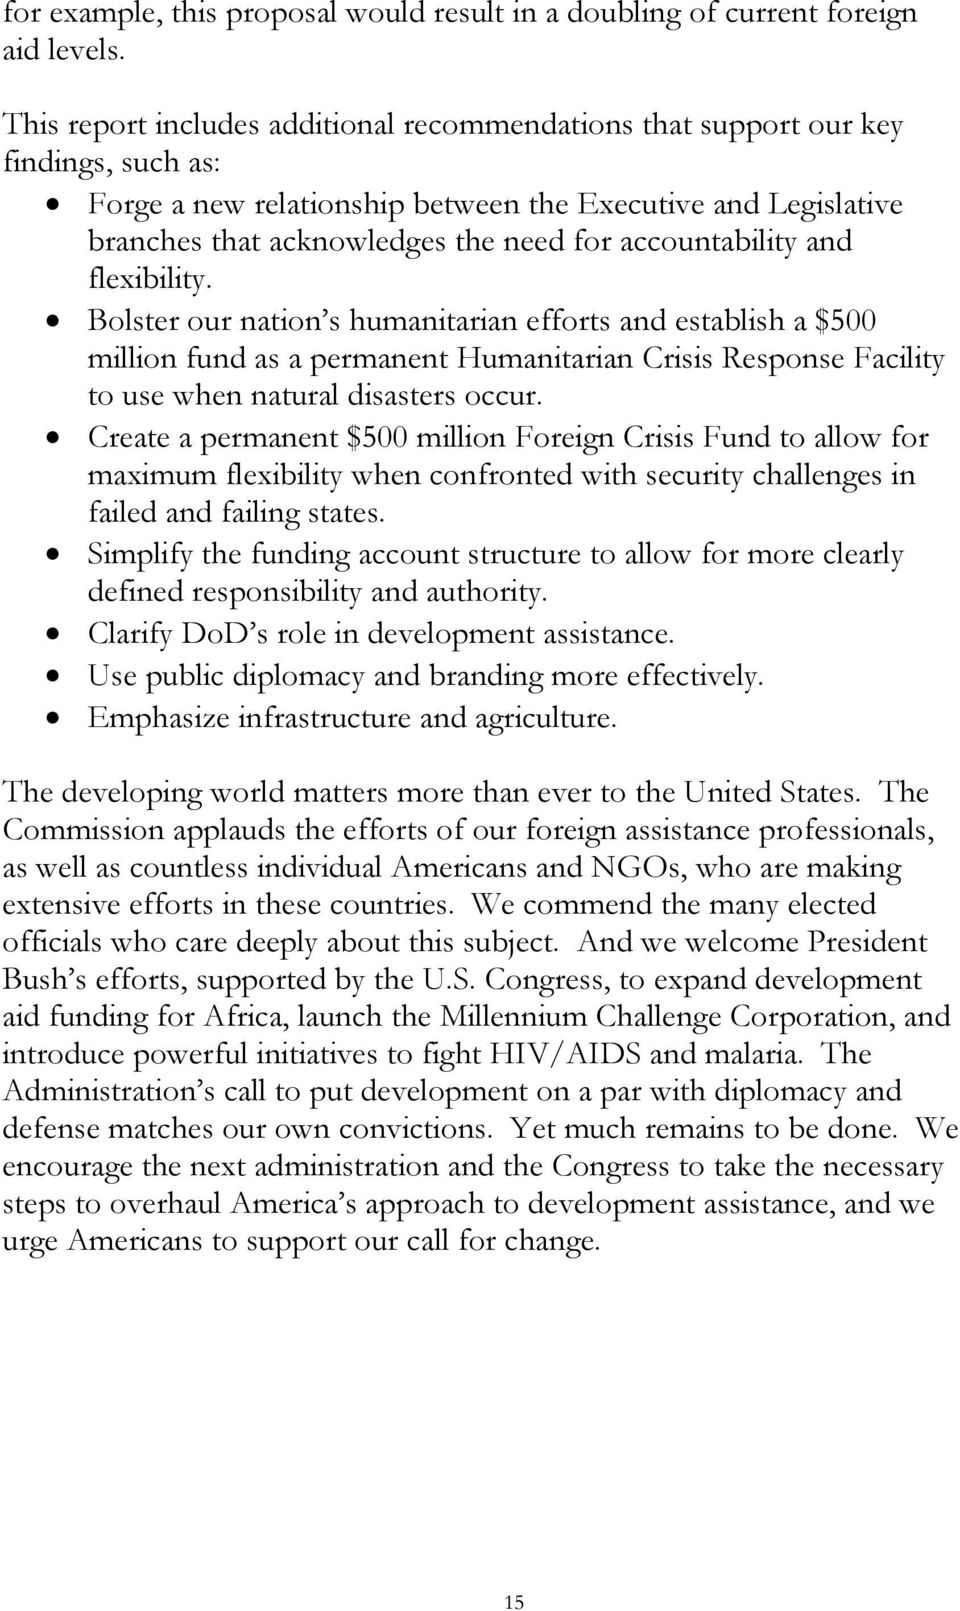 accountability and flexibility. Bolster our nation s humanitarian efforts and establish a $500 million fund as a permanent Humanitarian Crisis Response Facility to use when natural disasters occur.